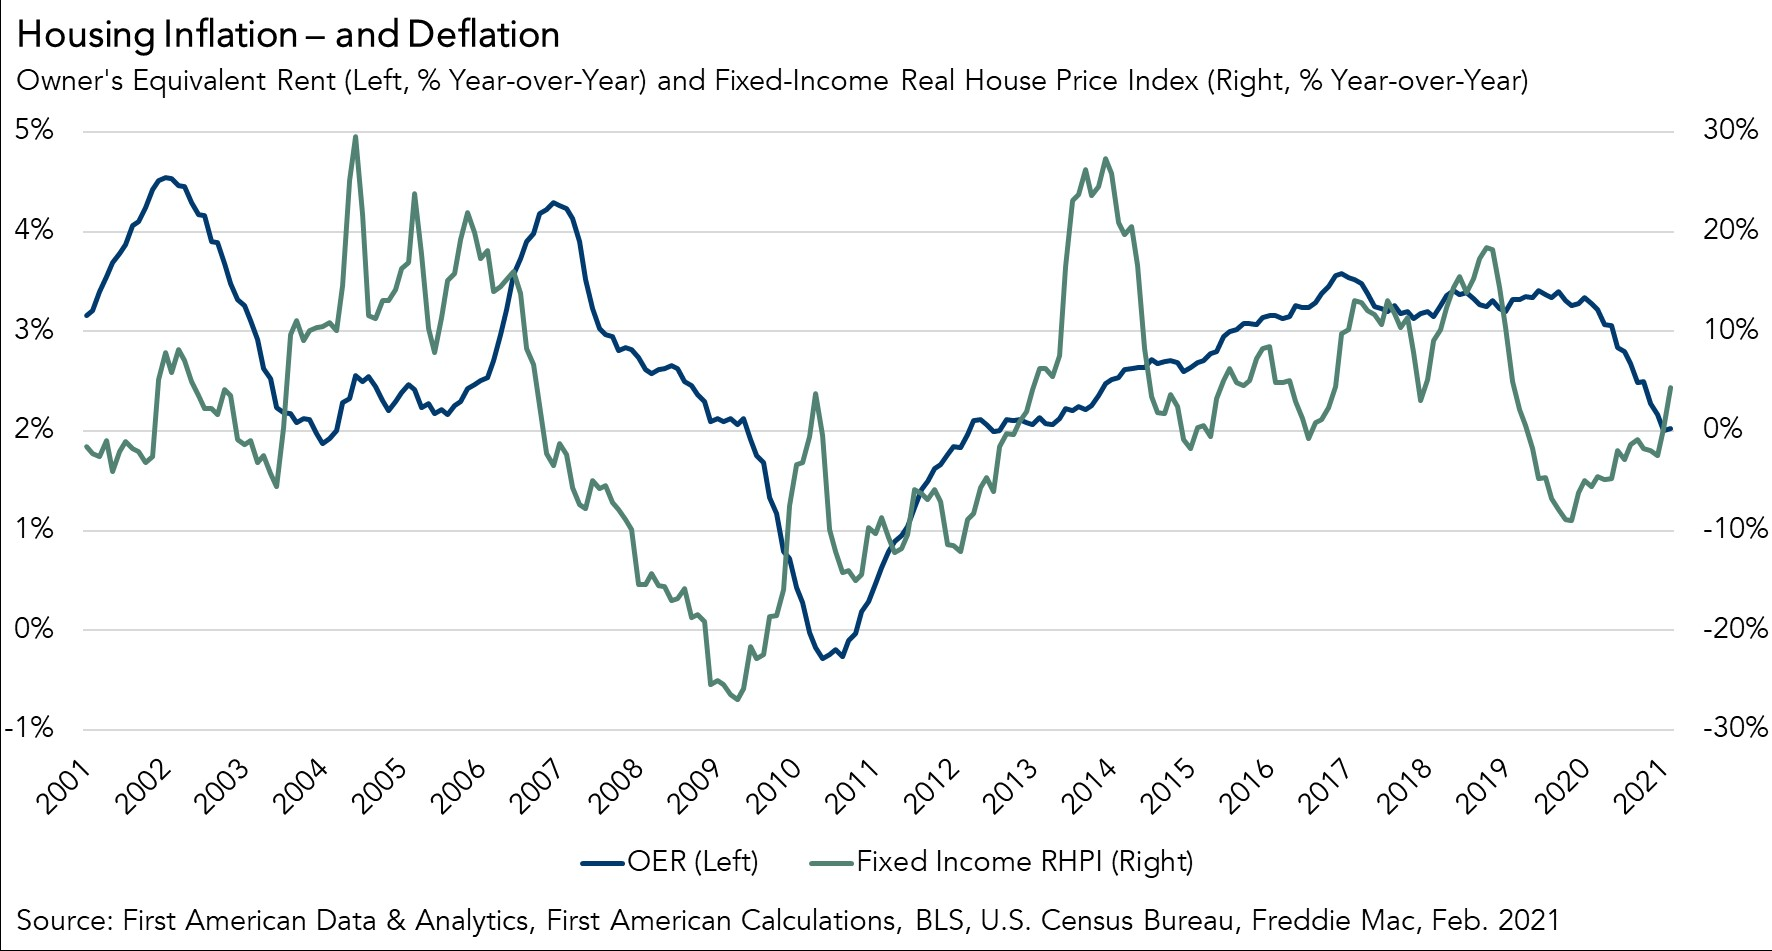 Housing Inflation - and Deflation Chart February 2021